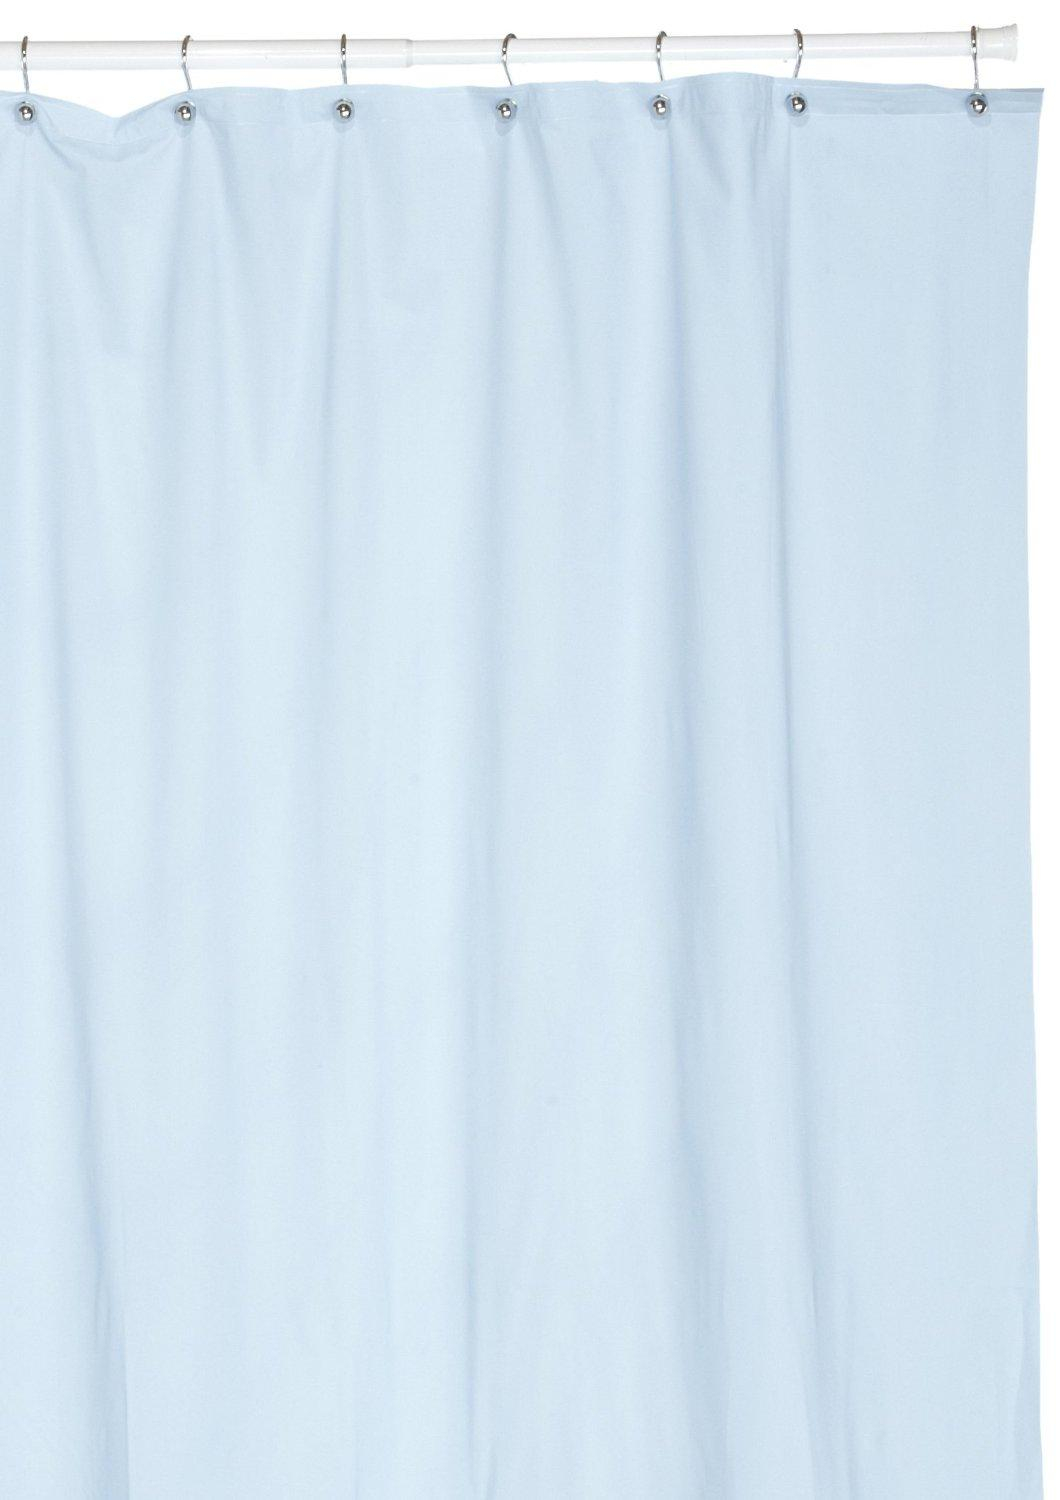 Hotel Quality 8 Gauge Vinyl Shower Curtain Liner Light Blue regarding measurements 1060 X 1500